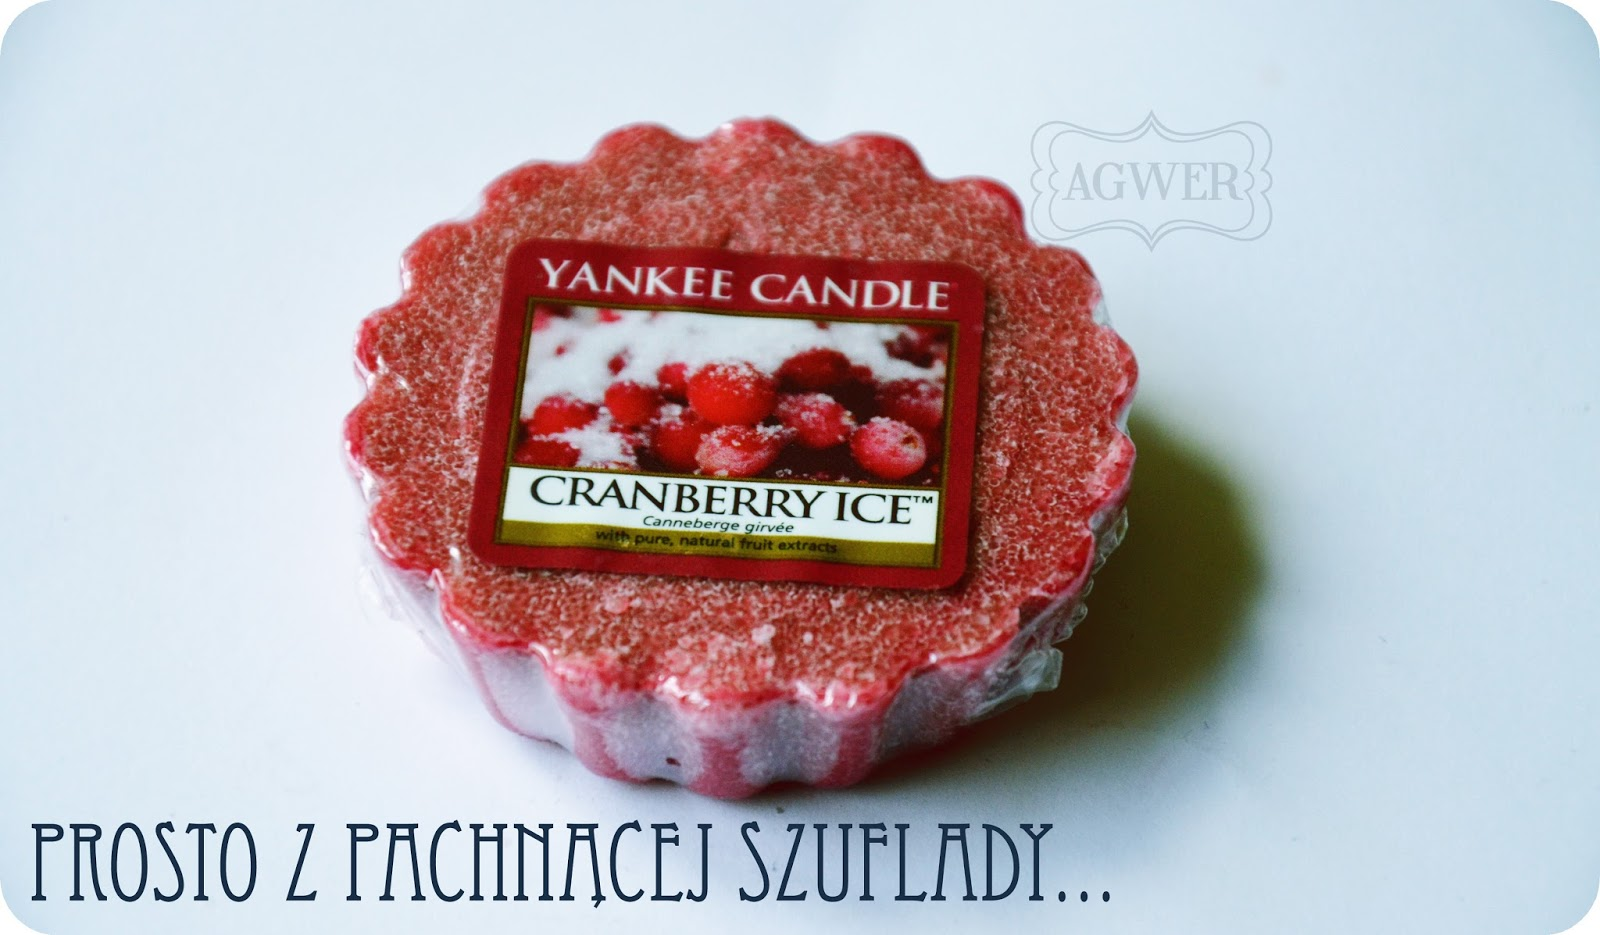 cranberry-ice-yankee-candle